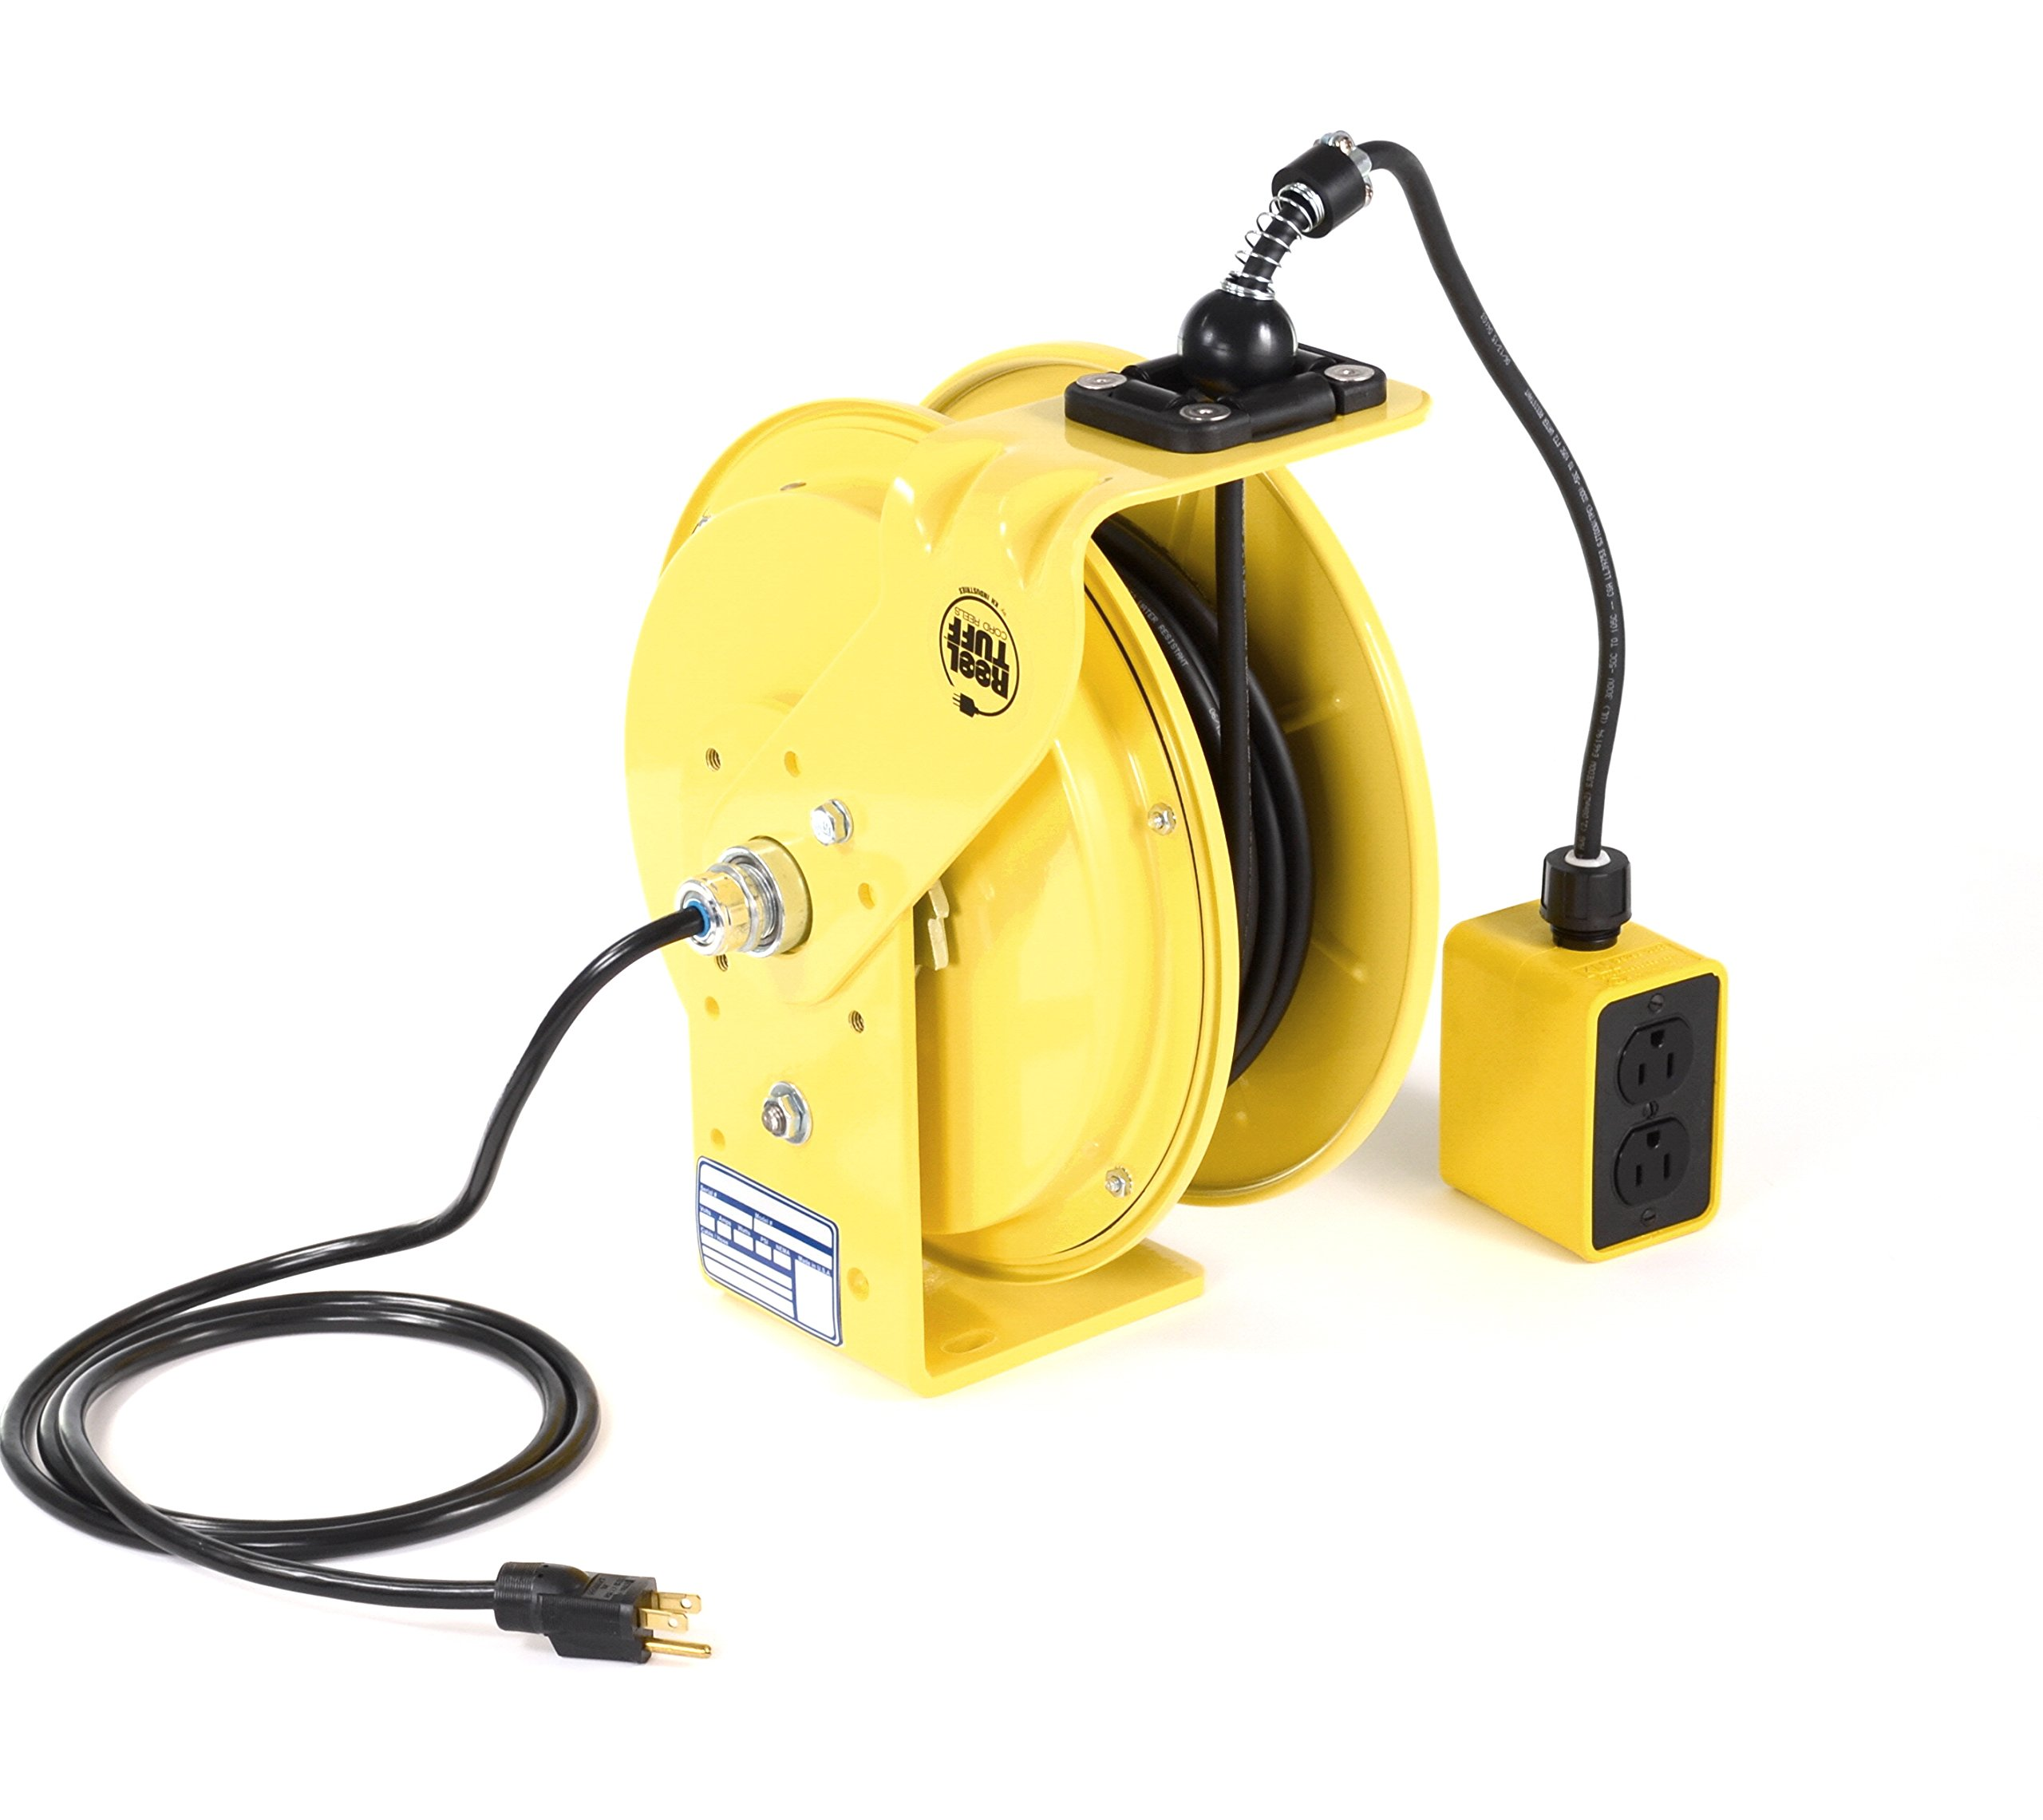 KH Industries RTB Series ReelTuff Industrial Grade Retractable Power Cord Reel with Black Cable, 16/3 SJOW Cable Prewired with Four Receptacle Outlet Box, 15 Amp, 50' Length, Yellow Powder Coat Finish by KH Industries